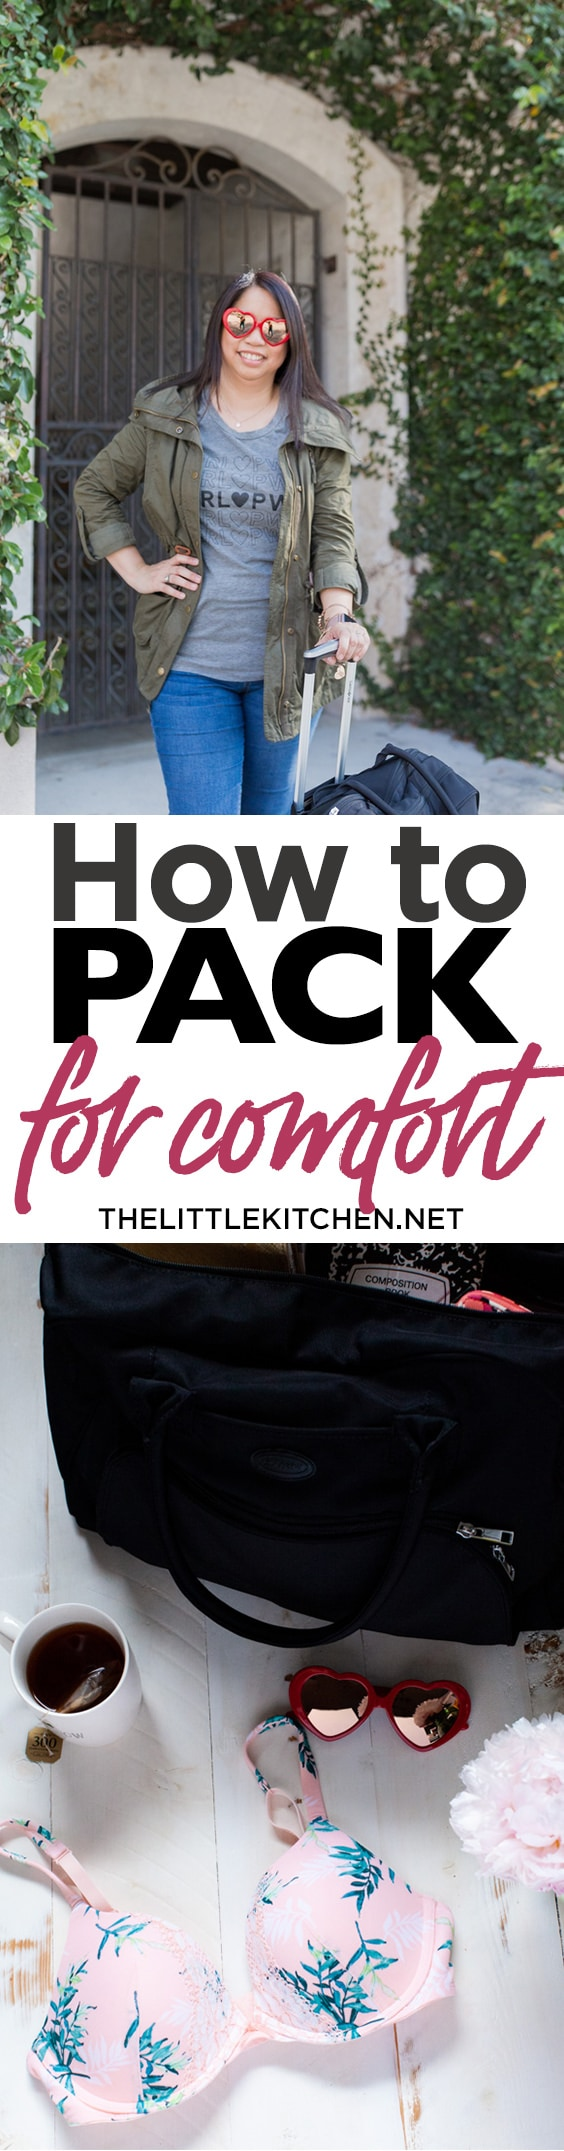 How to Pack for Comfort thelittlekitchen.net